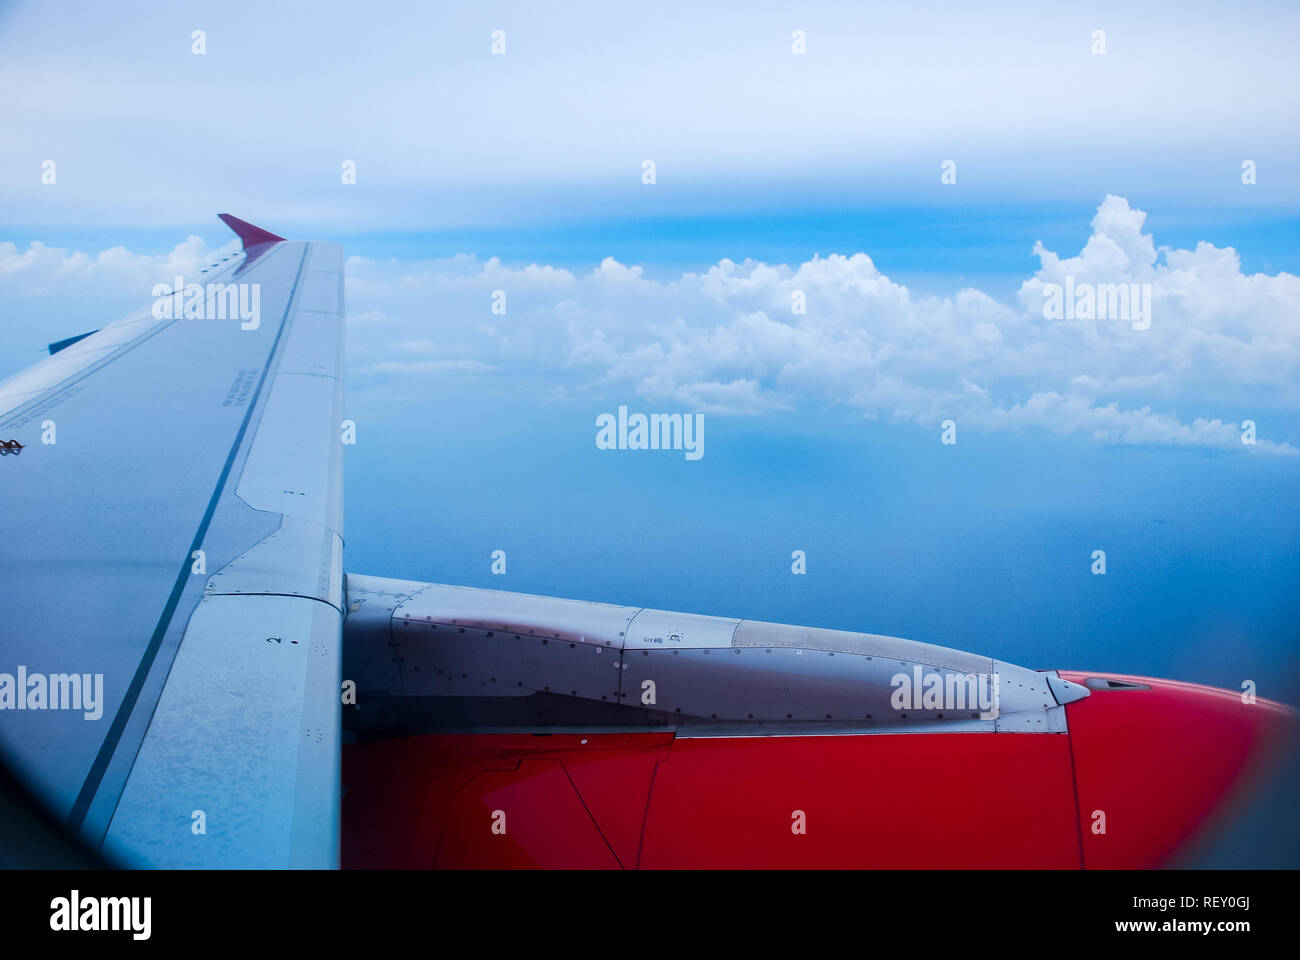 Sky view from airplane. Aerial view from windows. Transportation Concept. Stock Photo